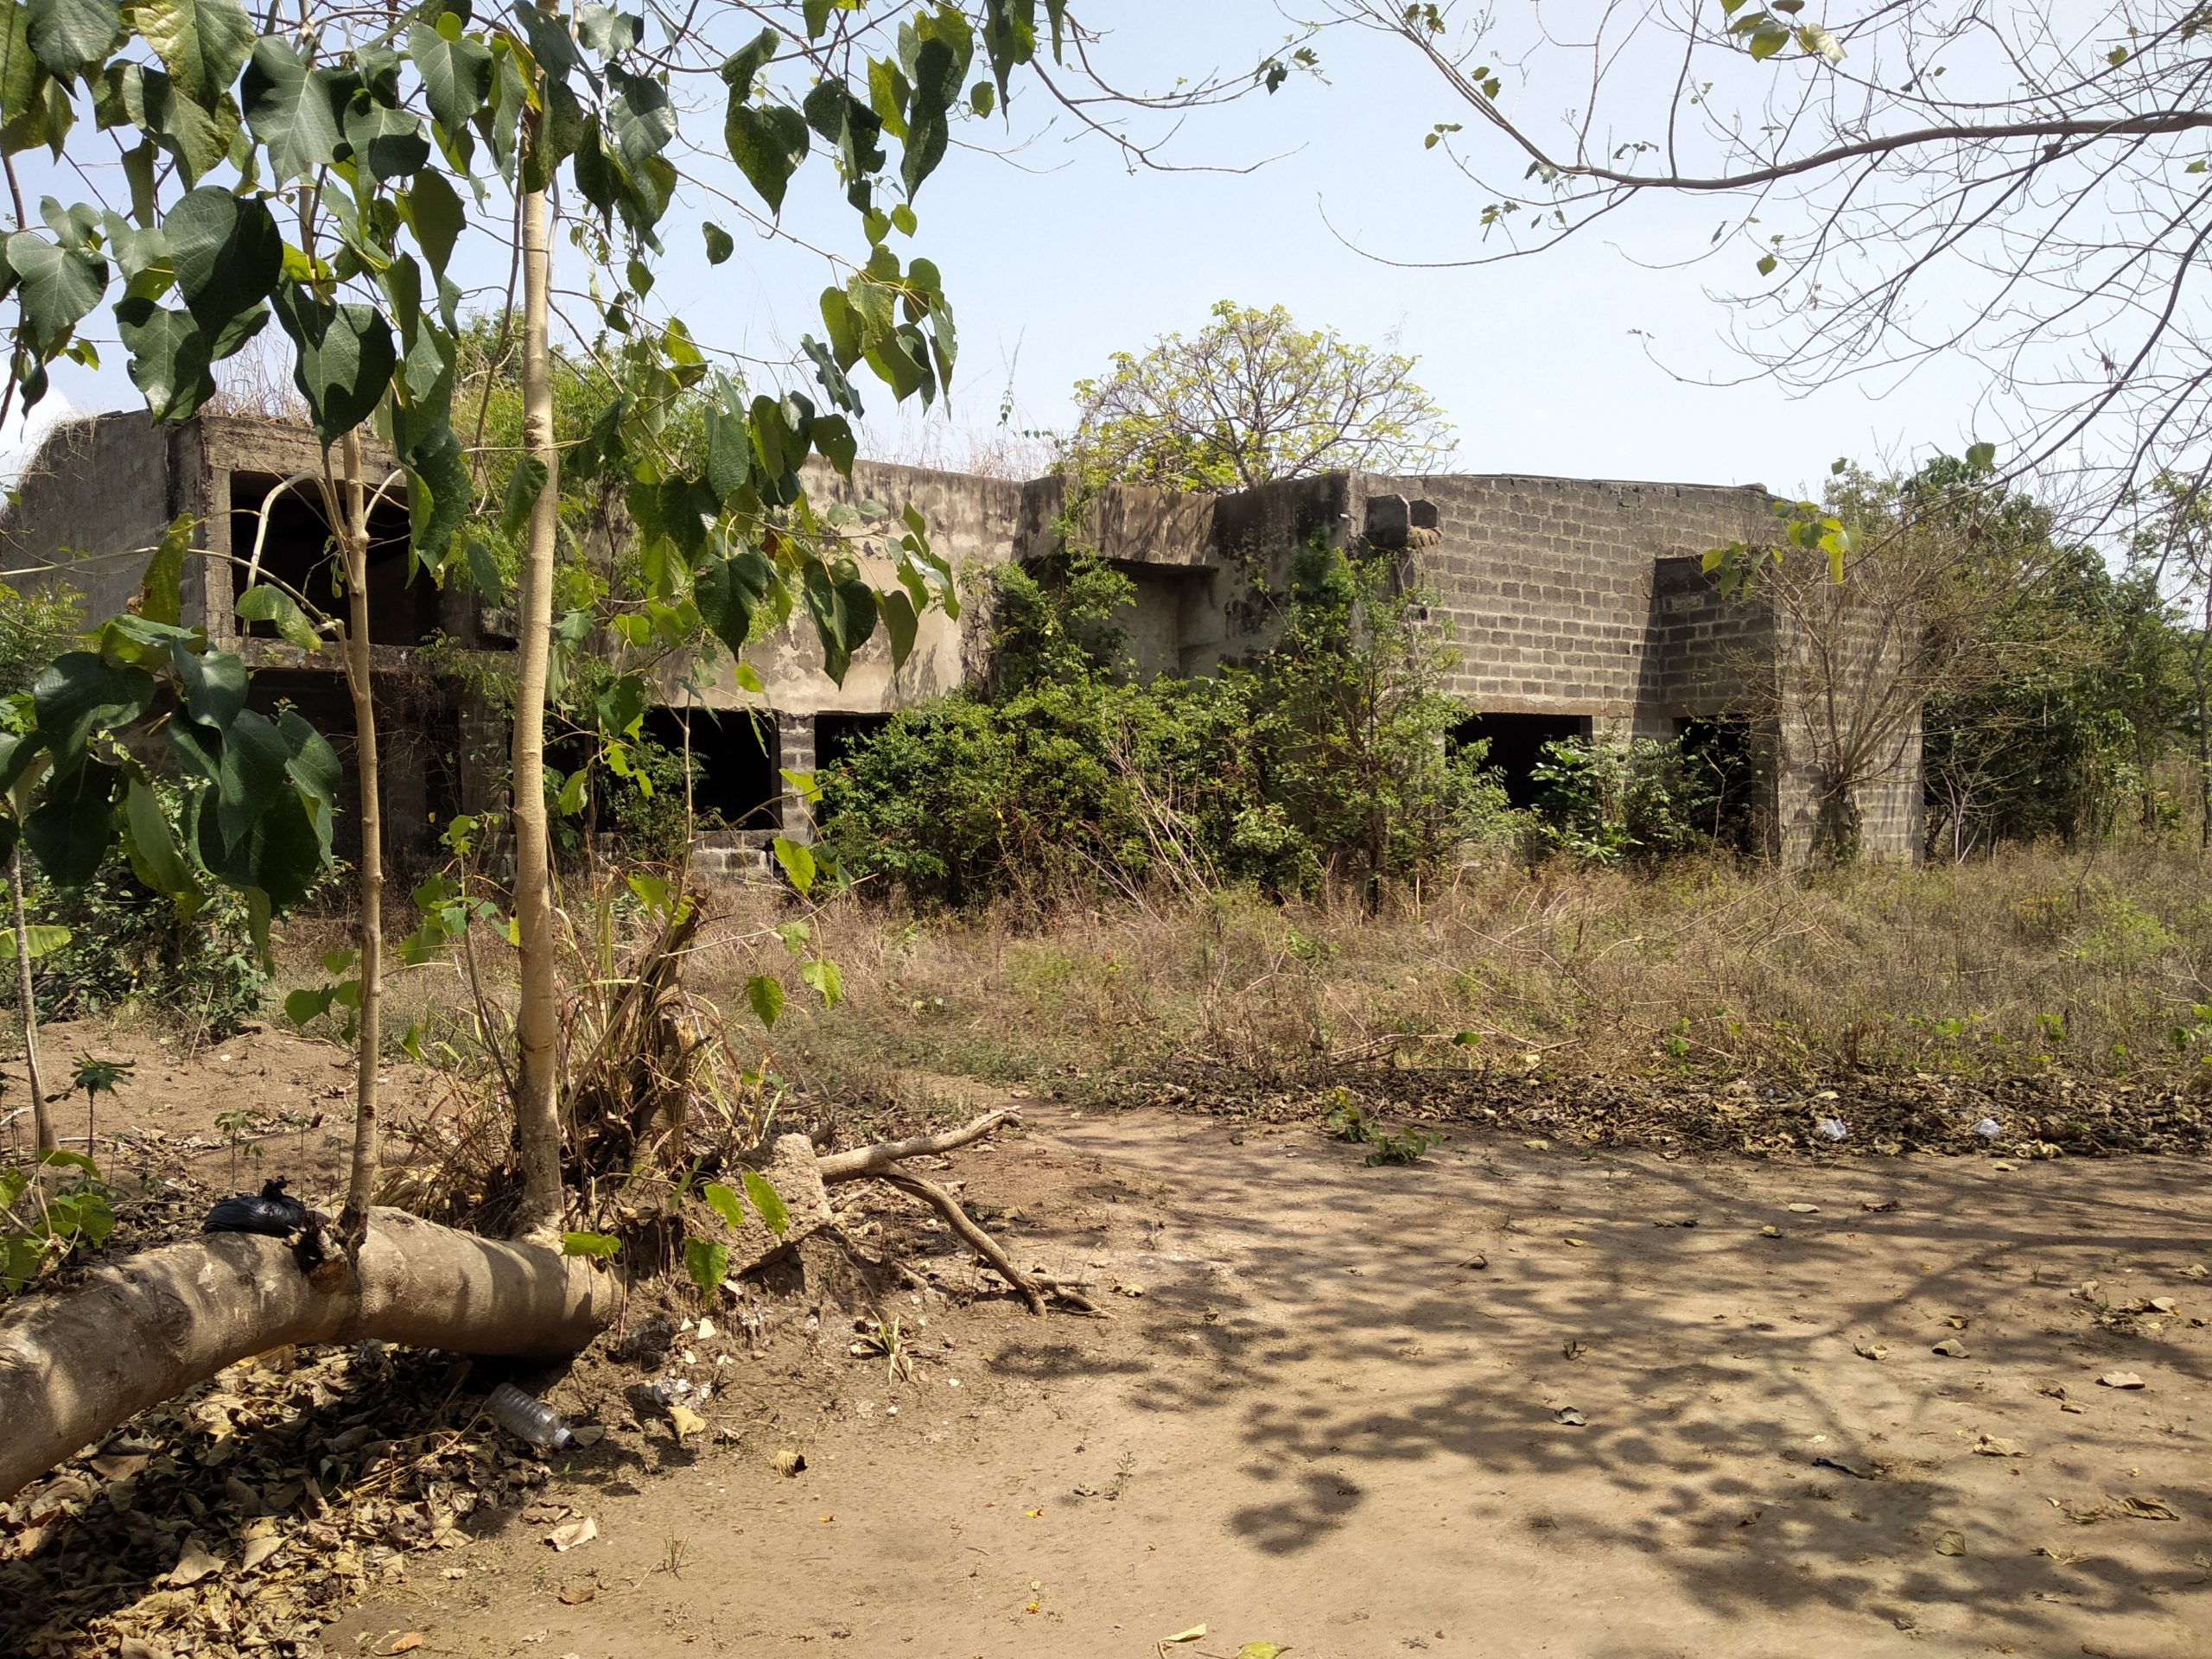 Okeho General Hospital: Another Morbid Secondary Healthcare Institution - Brand Spur